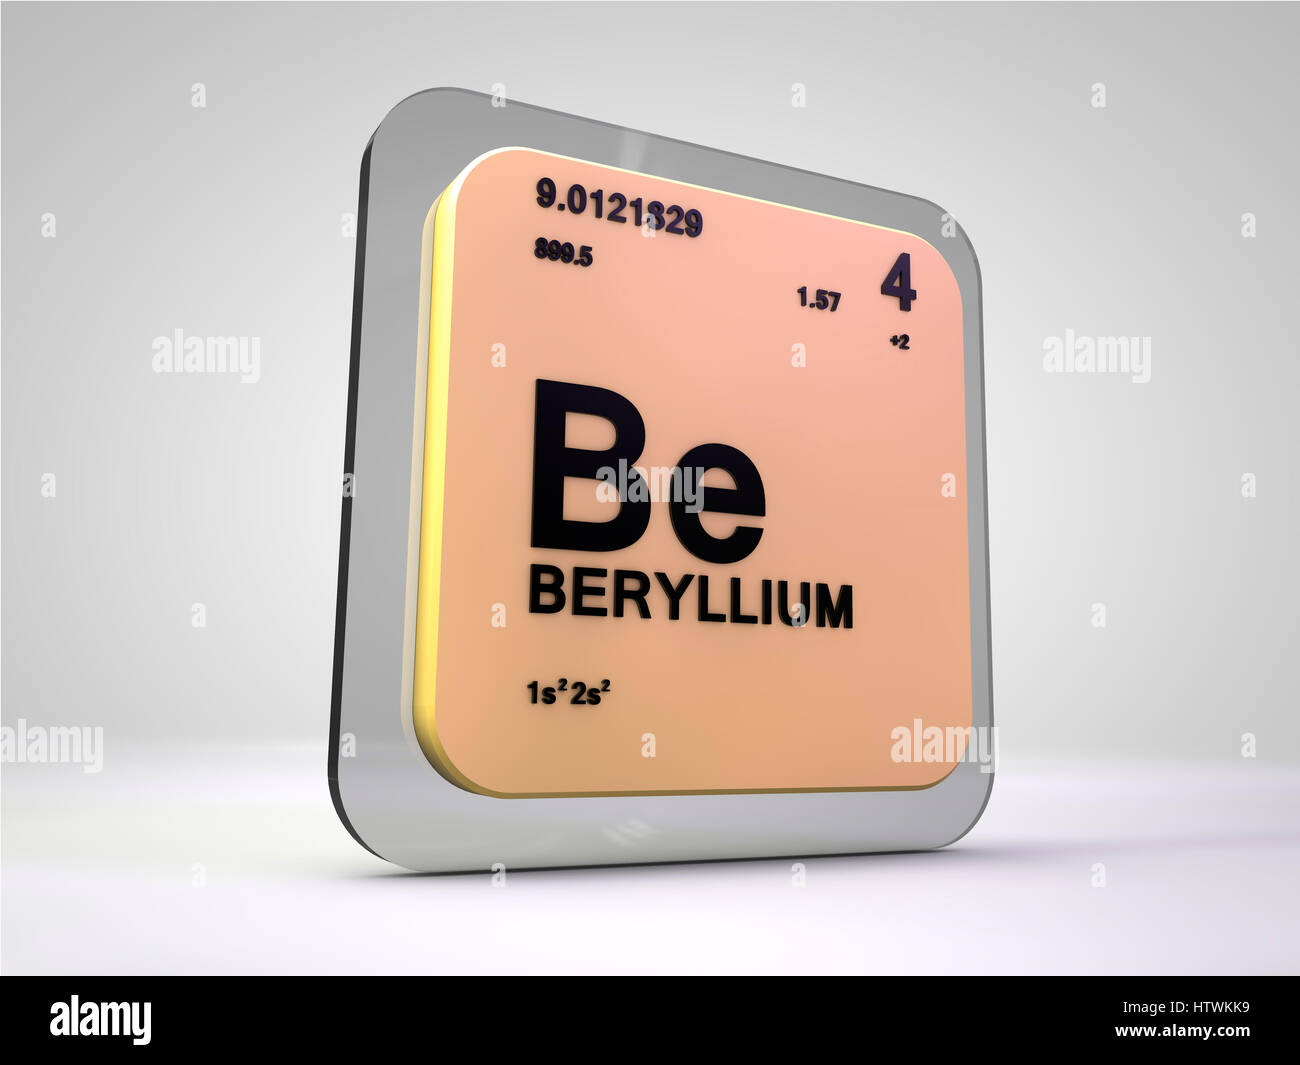 Beryllium be chemical element periodic table 3d render stock beryllium be chemical element periodic table 3d render buycottarizona Image collections